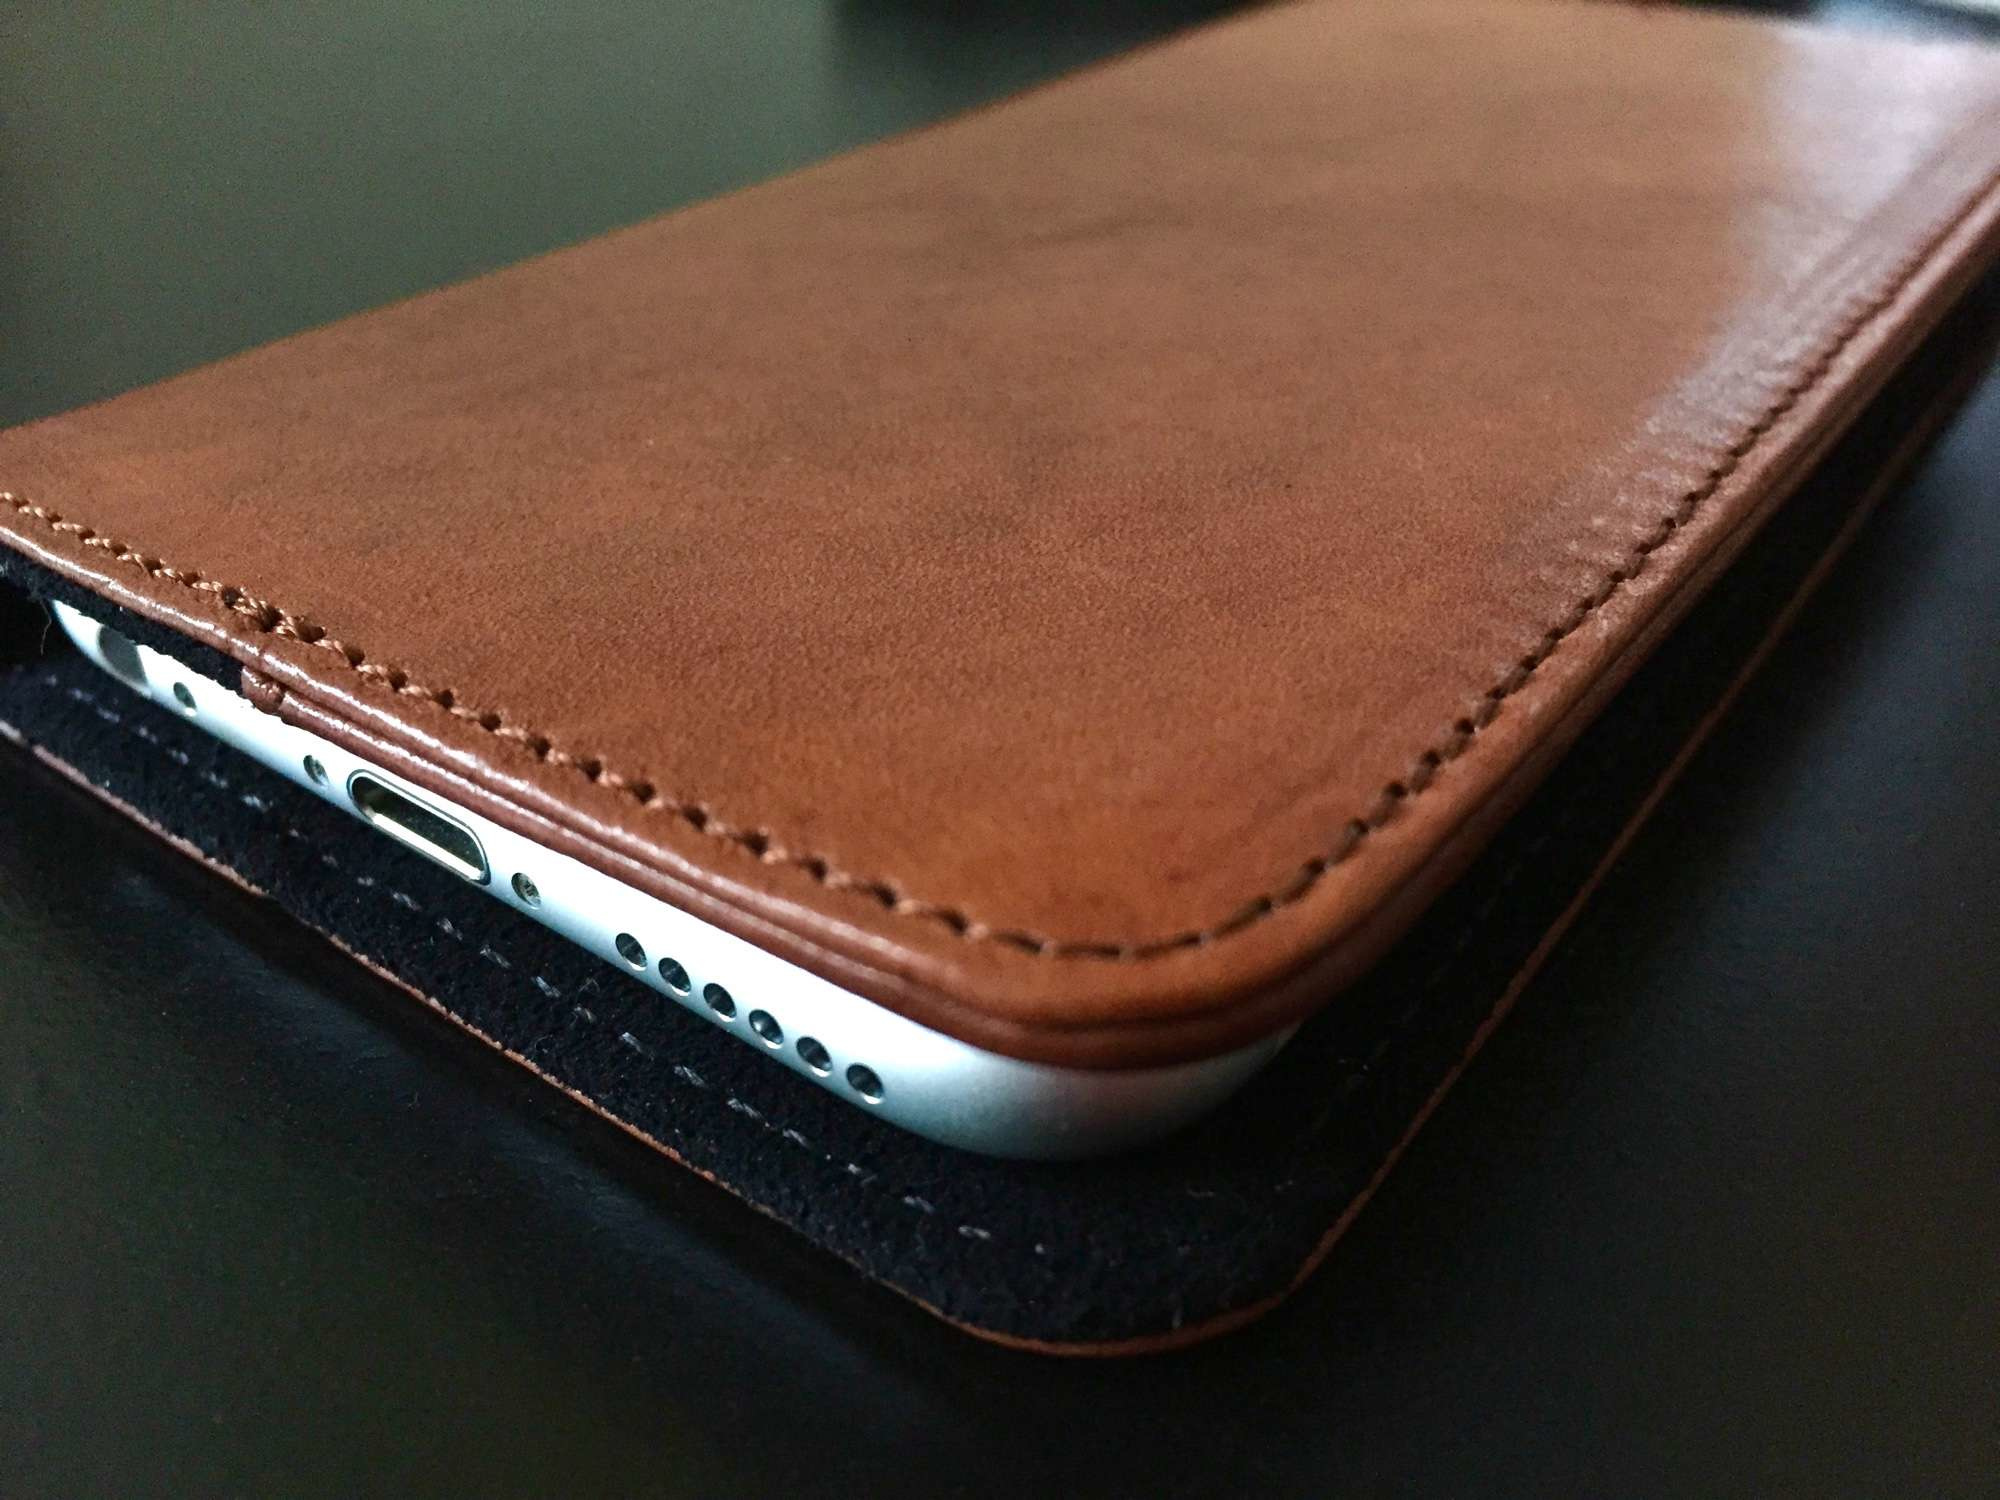 The Slimmest and Stylish iPhone Cases That Grab Eyeballs Every time - Image 3